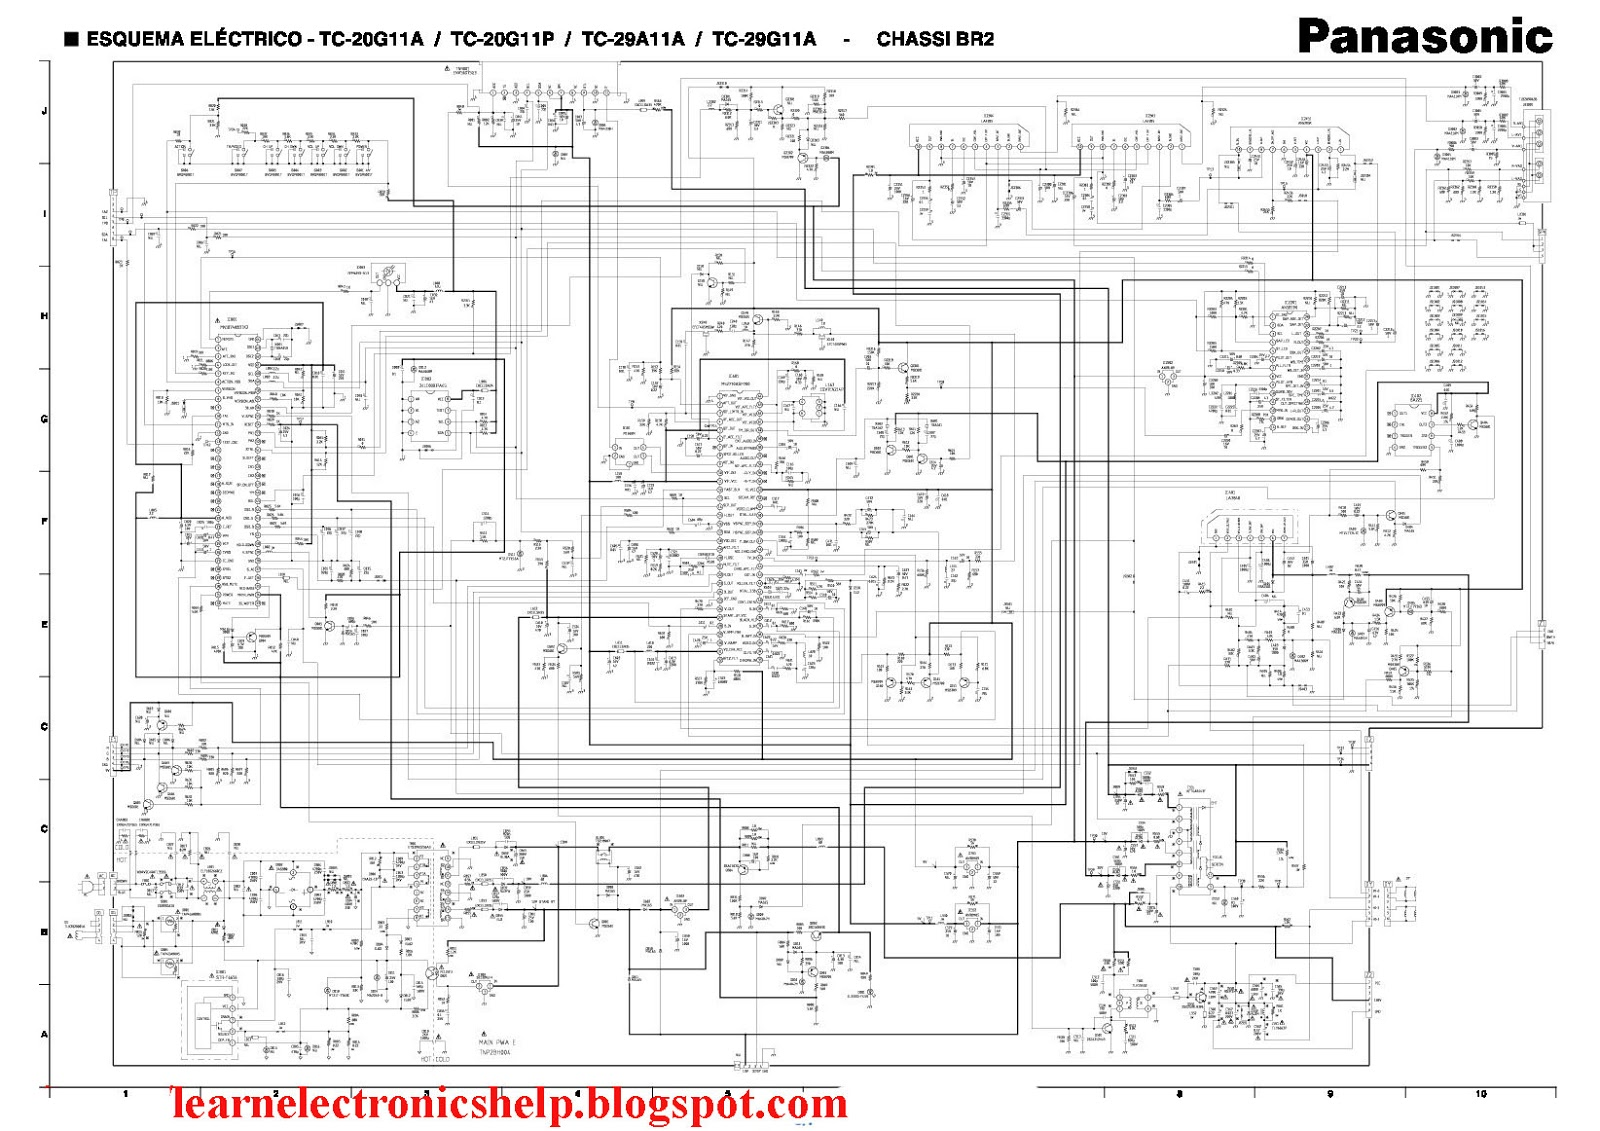 medium resolution of panasonic schematic diagram circuit simple wiring diagram schema panasonic microwave oven parts list panasonic schematic diagram